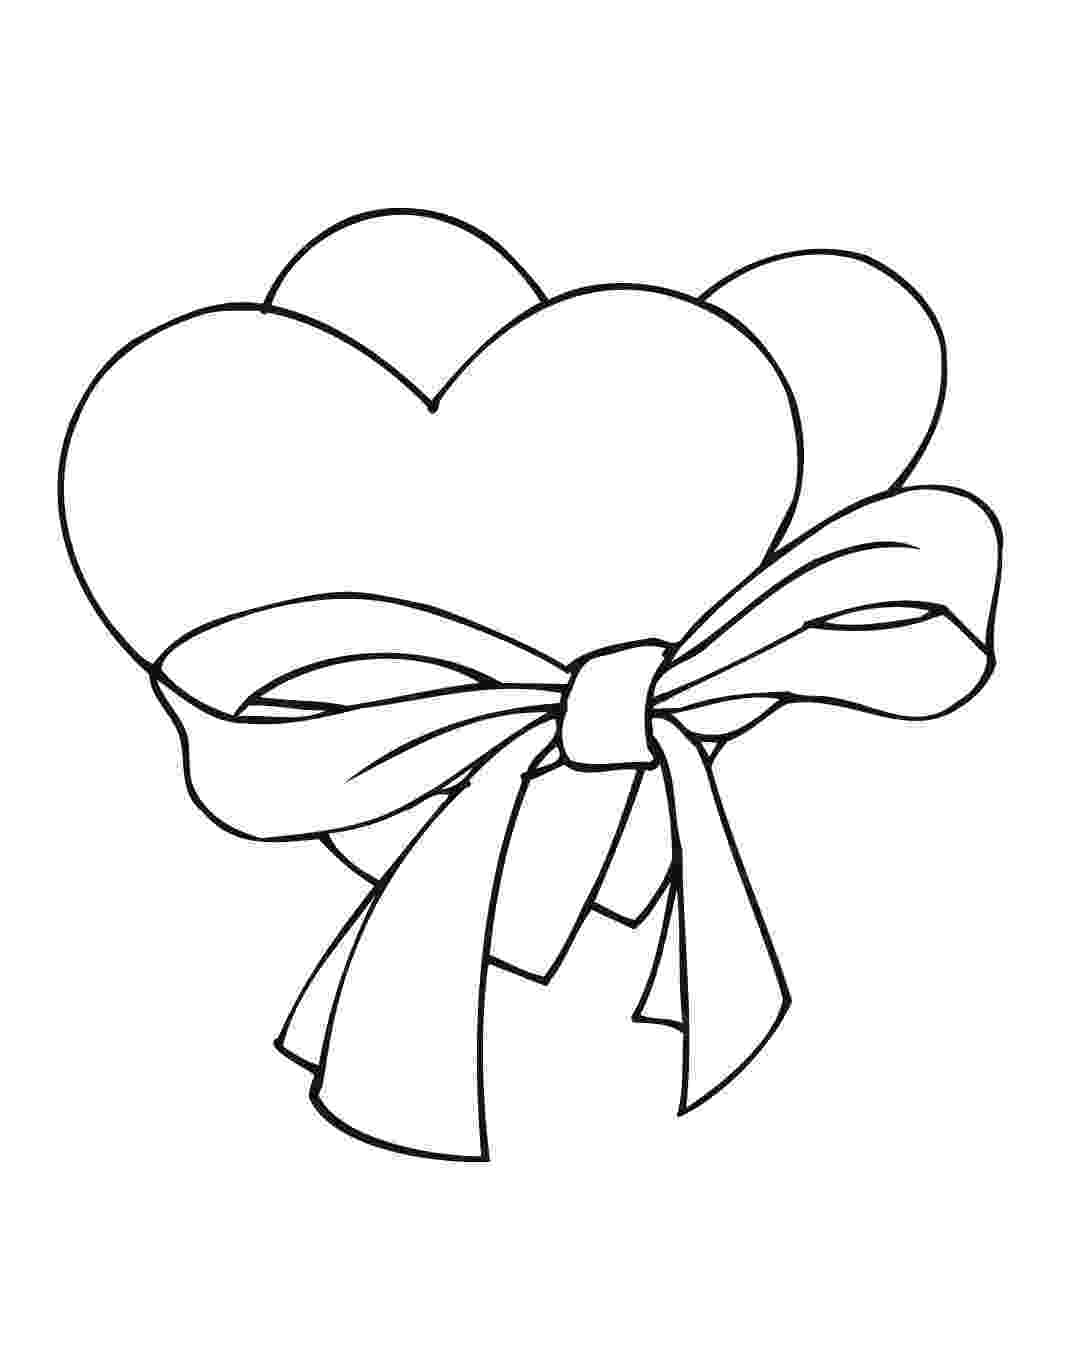 coloring book pictures of hearts hearts coloring pages valentine hearts kids zone at book pictures hearts coloring of